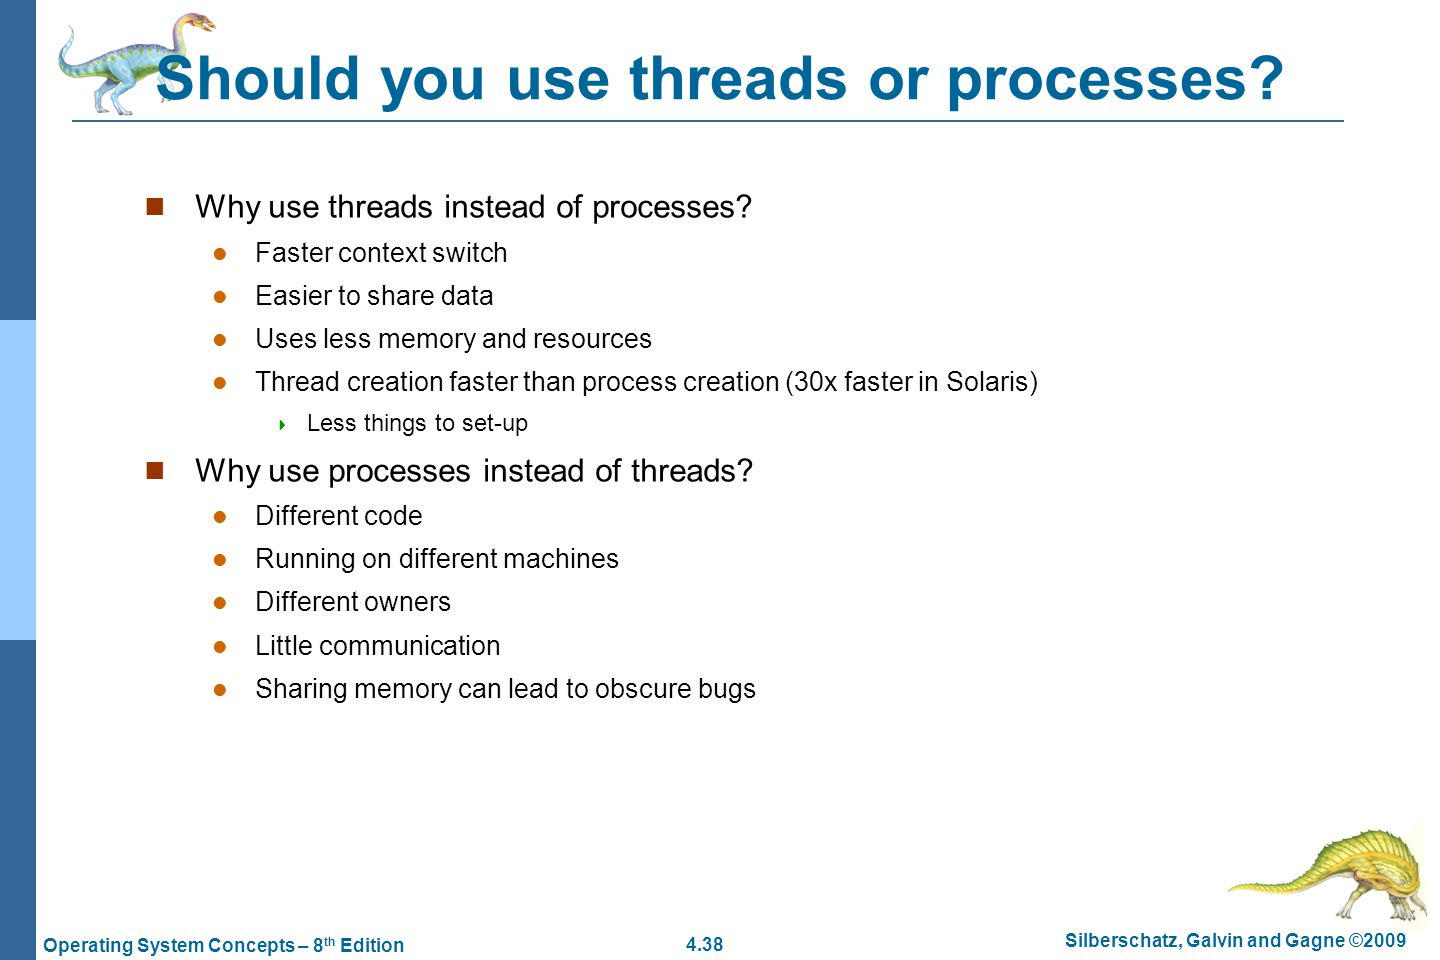 Should you use threads or processes